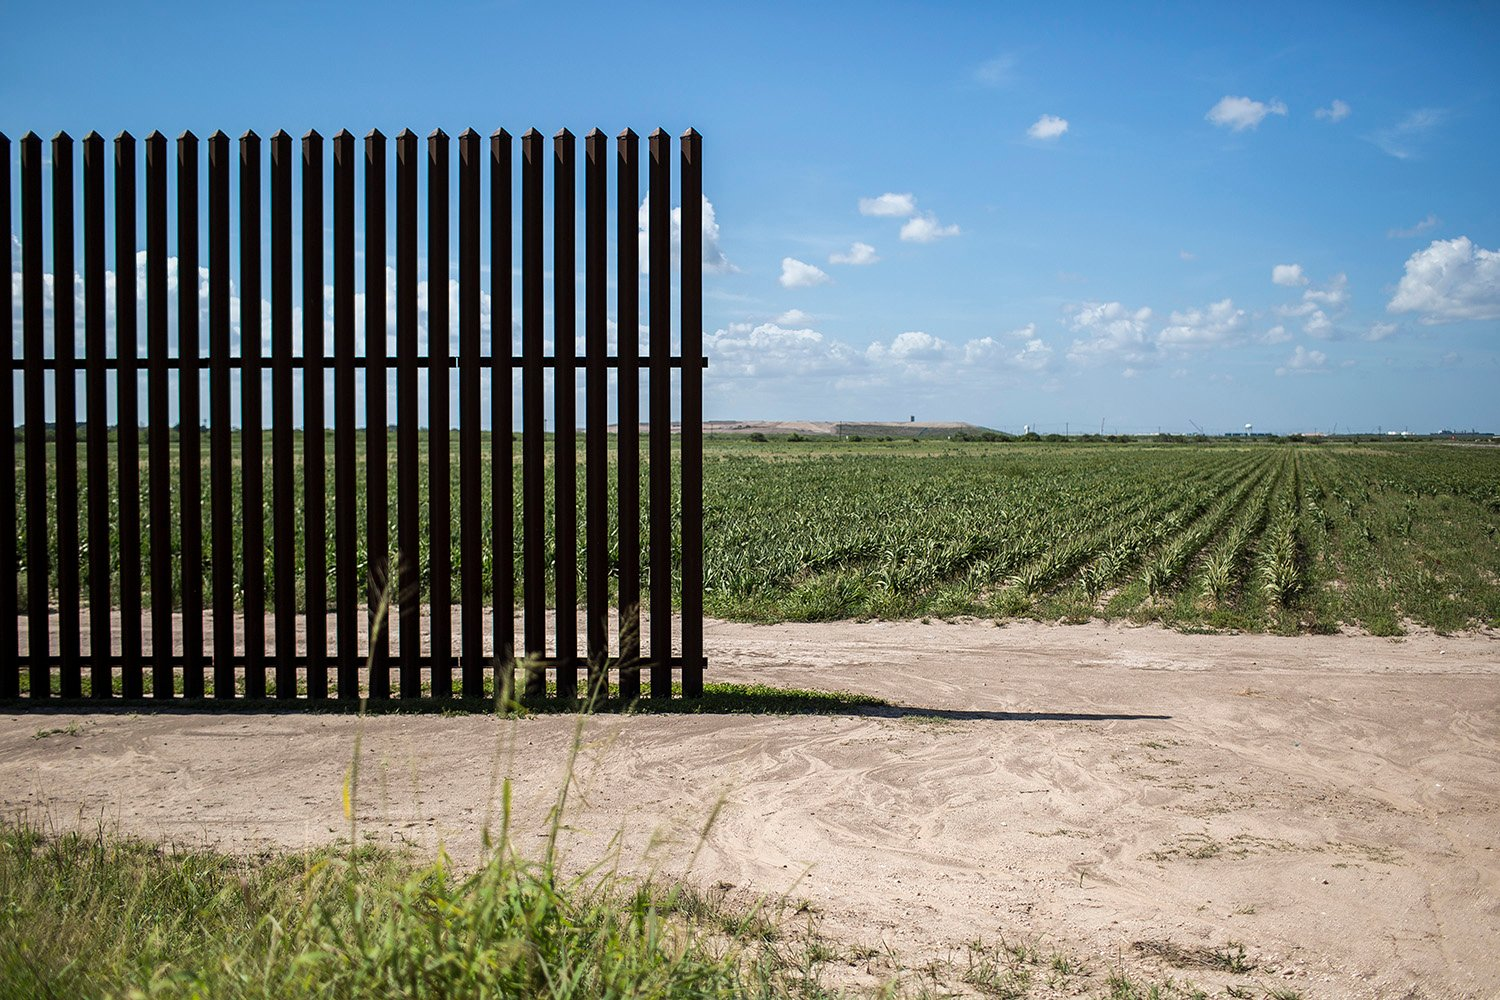 The end of a segment of the border fence near Oklahoma Avenue in Brownsville. To avoid paying for land trapped between the fence and the Rio Grande, the government left wide gaps so land owners could reach their fields.